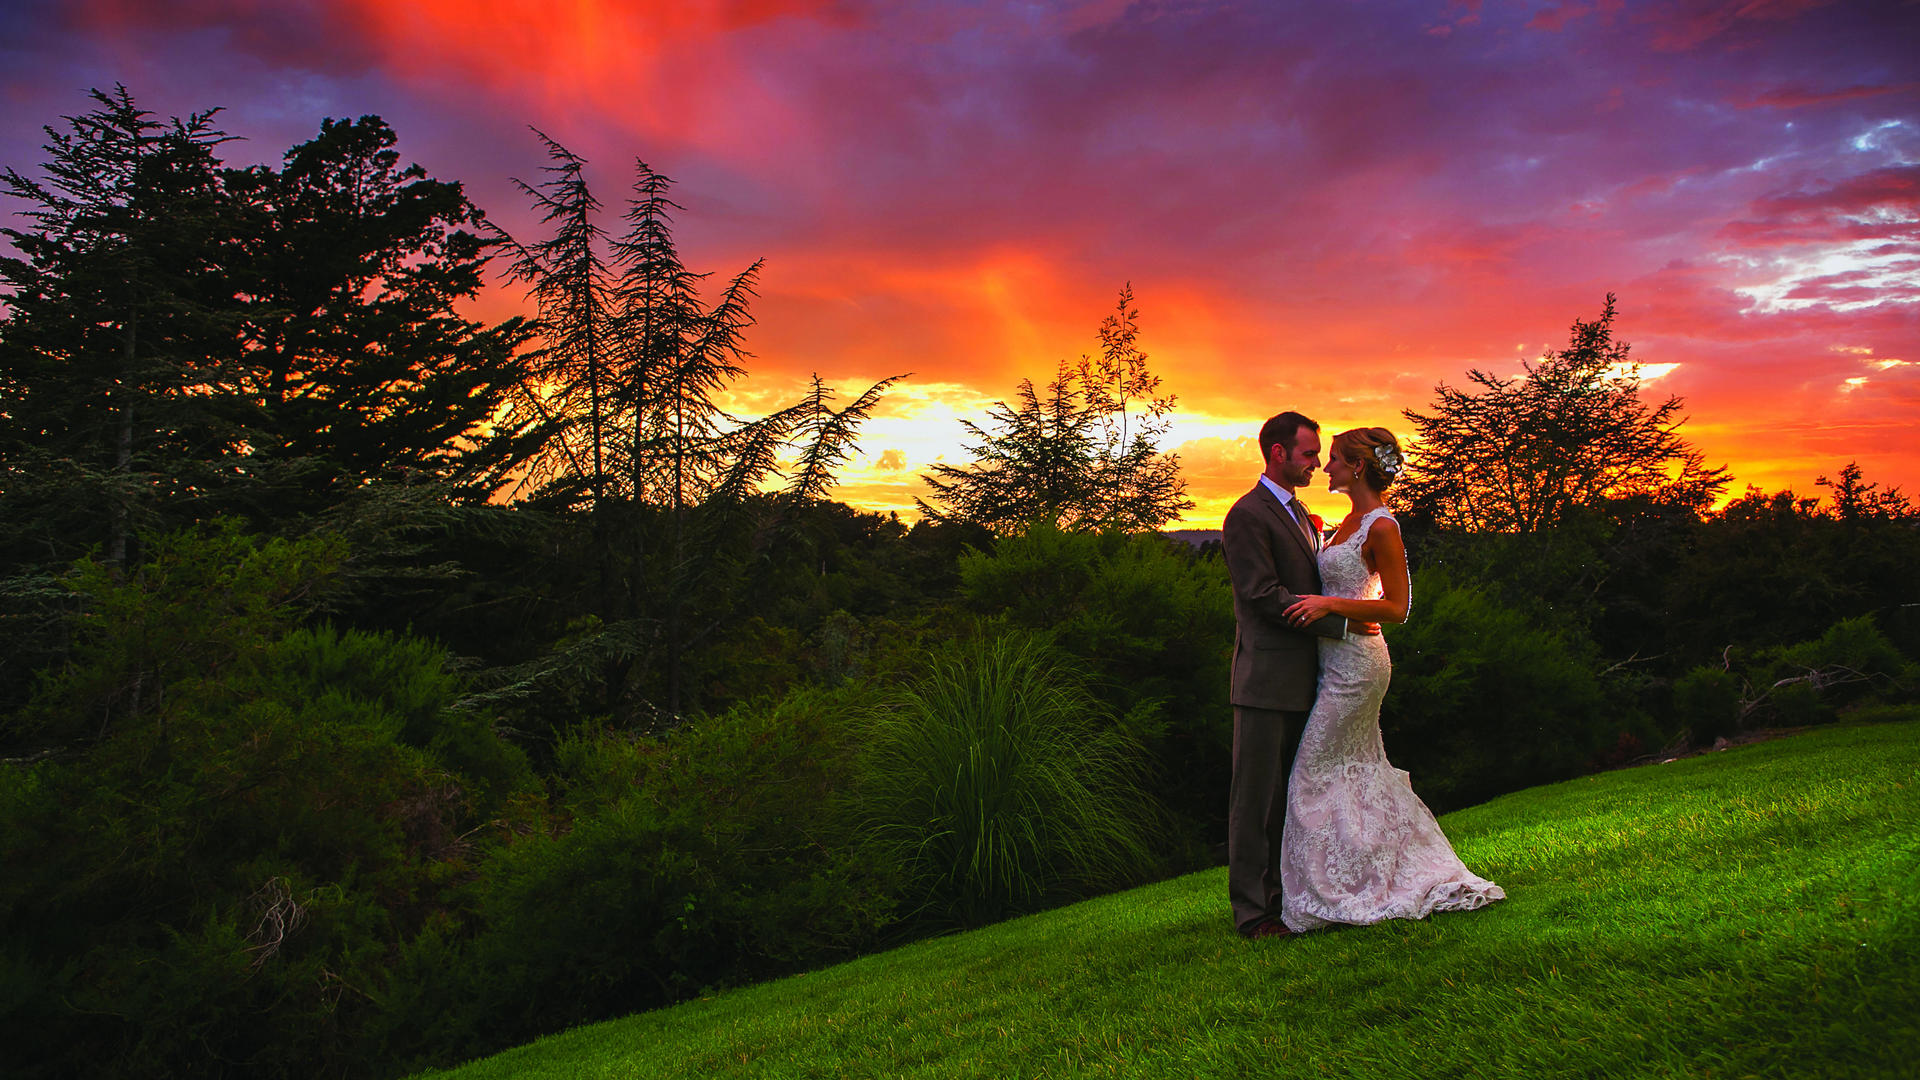 Weddings at Chaminade Resort & Spa